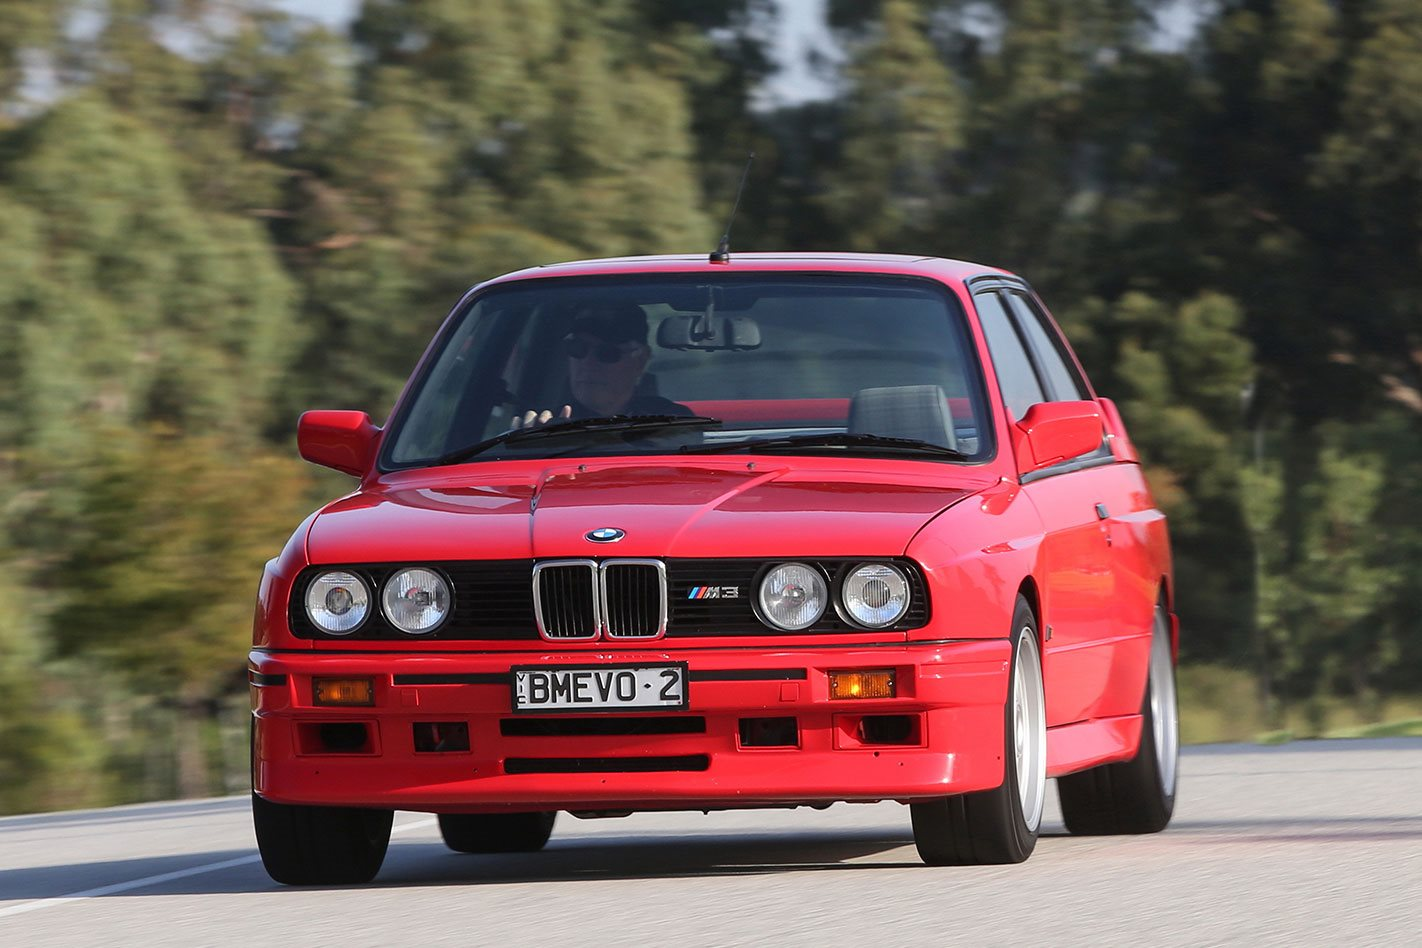 Bmw M3 E30 >> 30 Years Of Bmw M3 E30 Evolution Ii